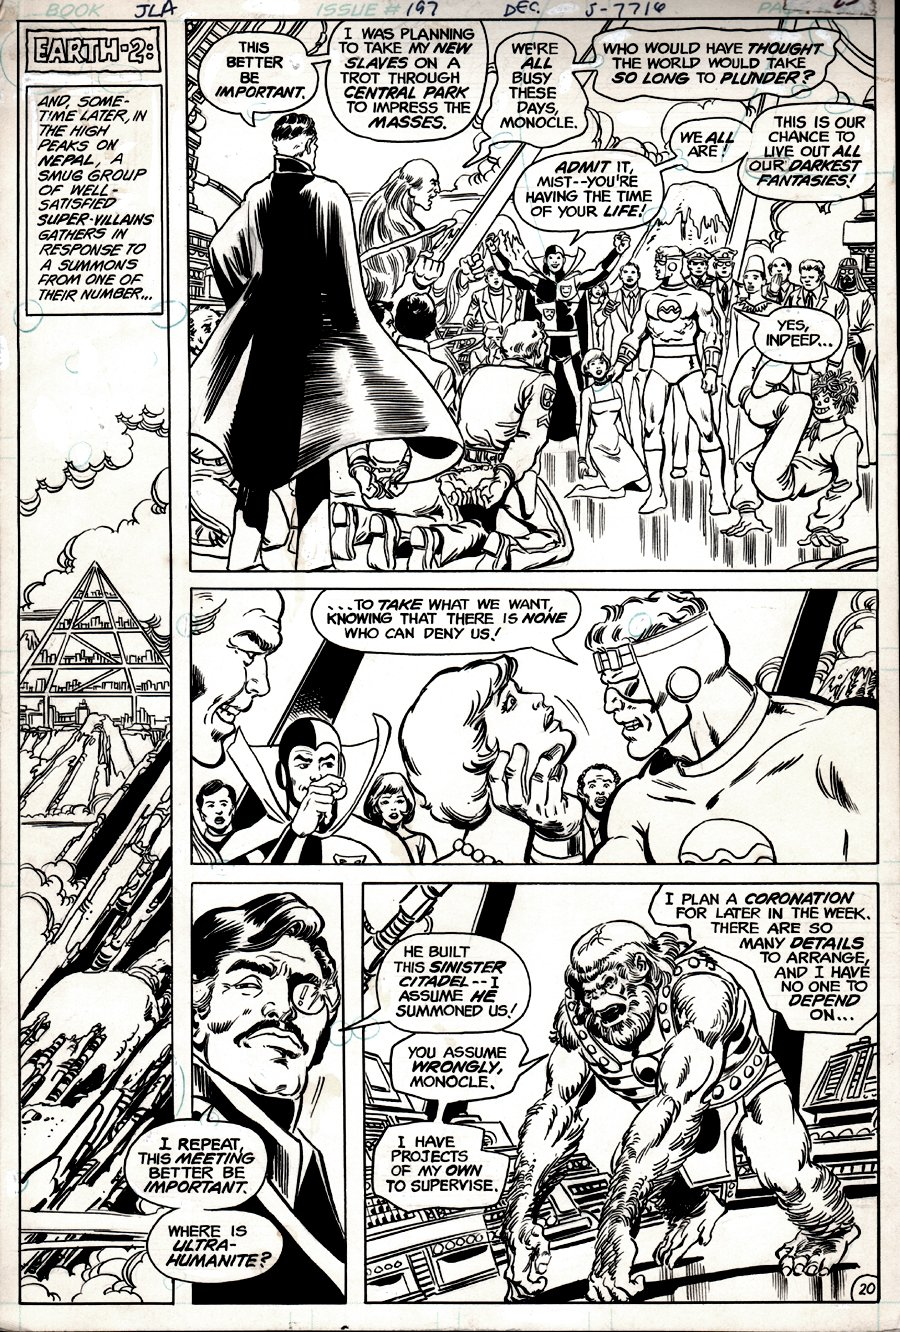 Justice League of America #197 p 20 (JLA / JSA EARLY CRISIS CROSS-OVER PAGE!) 1981